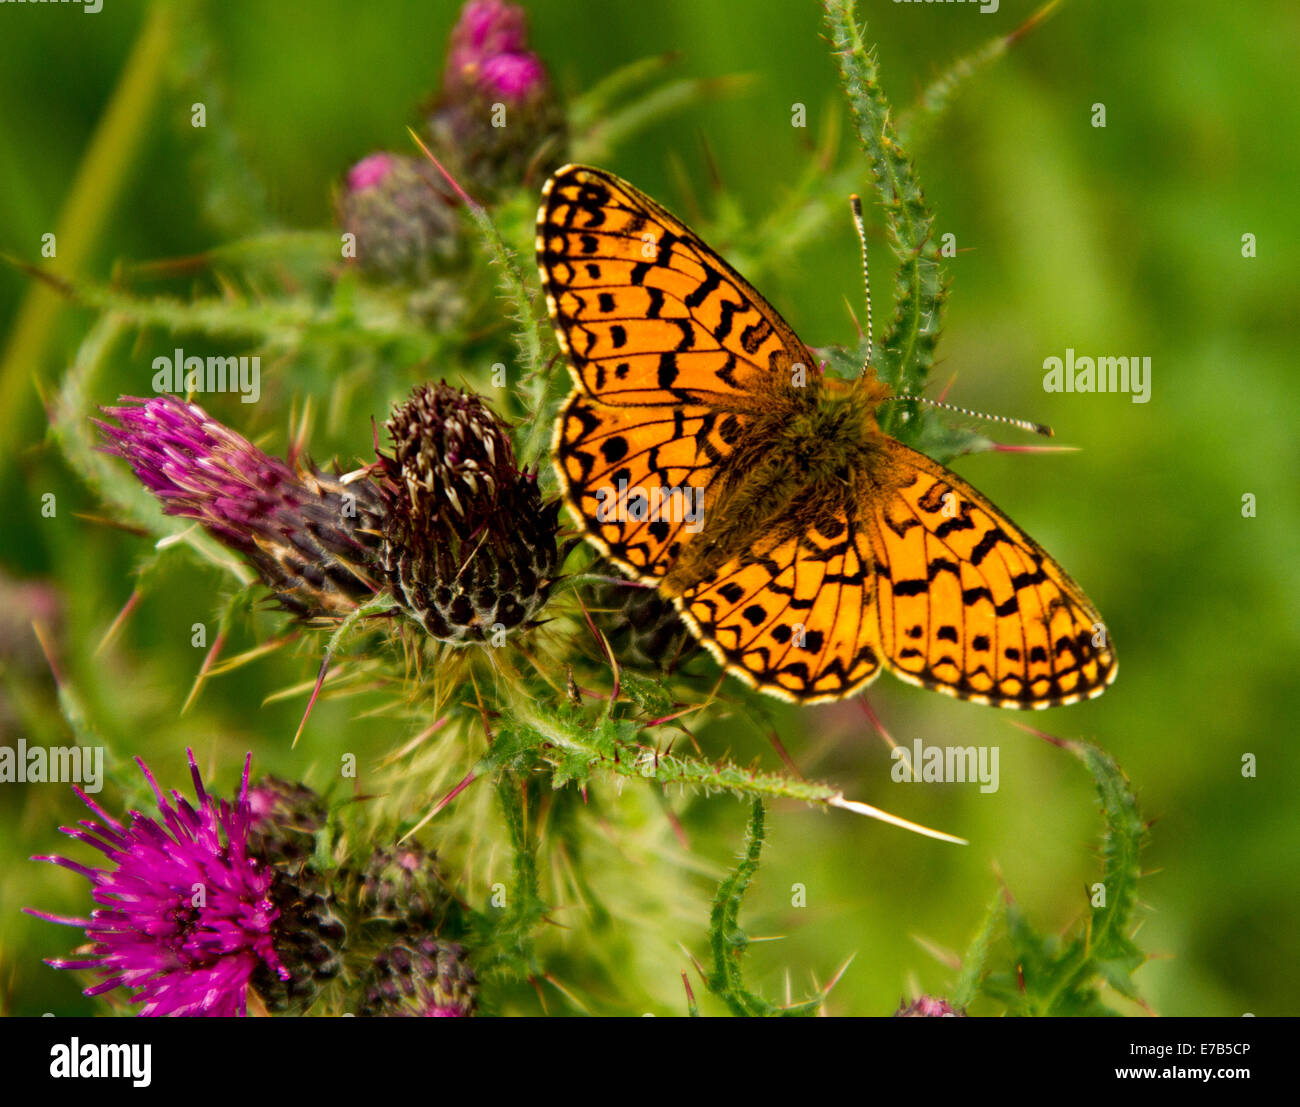 Bright orange & black British butterfly, pearl bordered fritillary, Boloria selene, on purple thistle flowers, - Stock Image